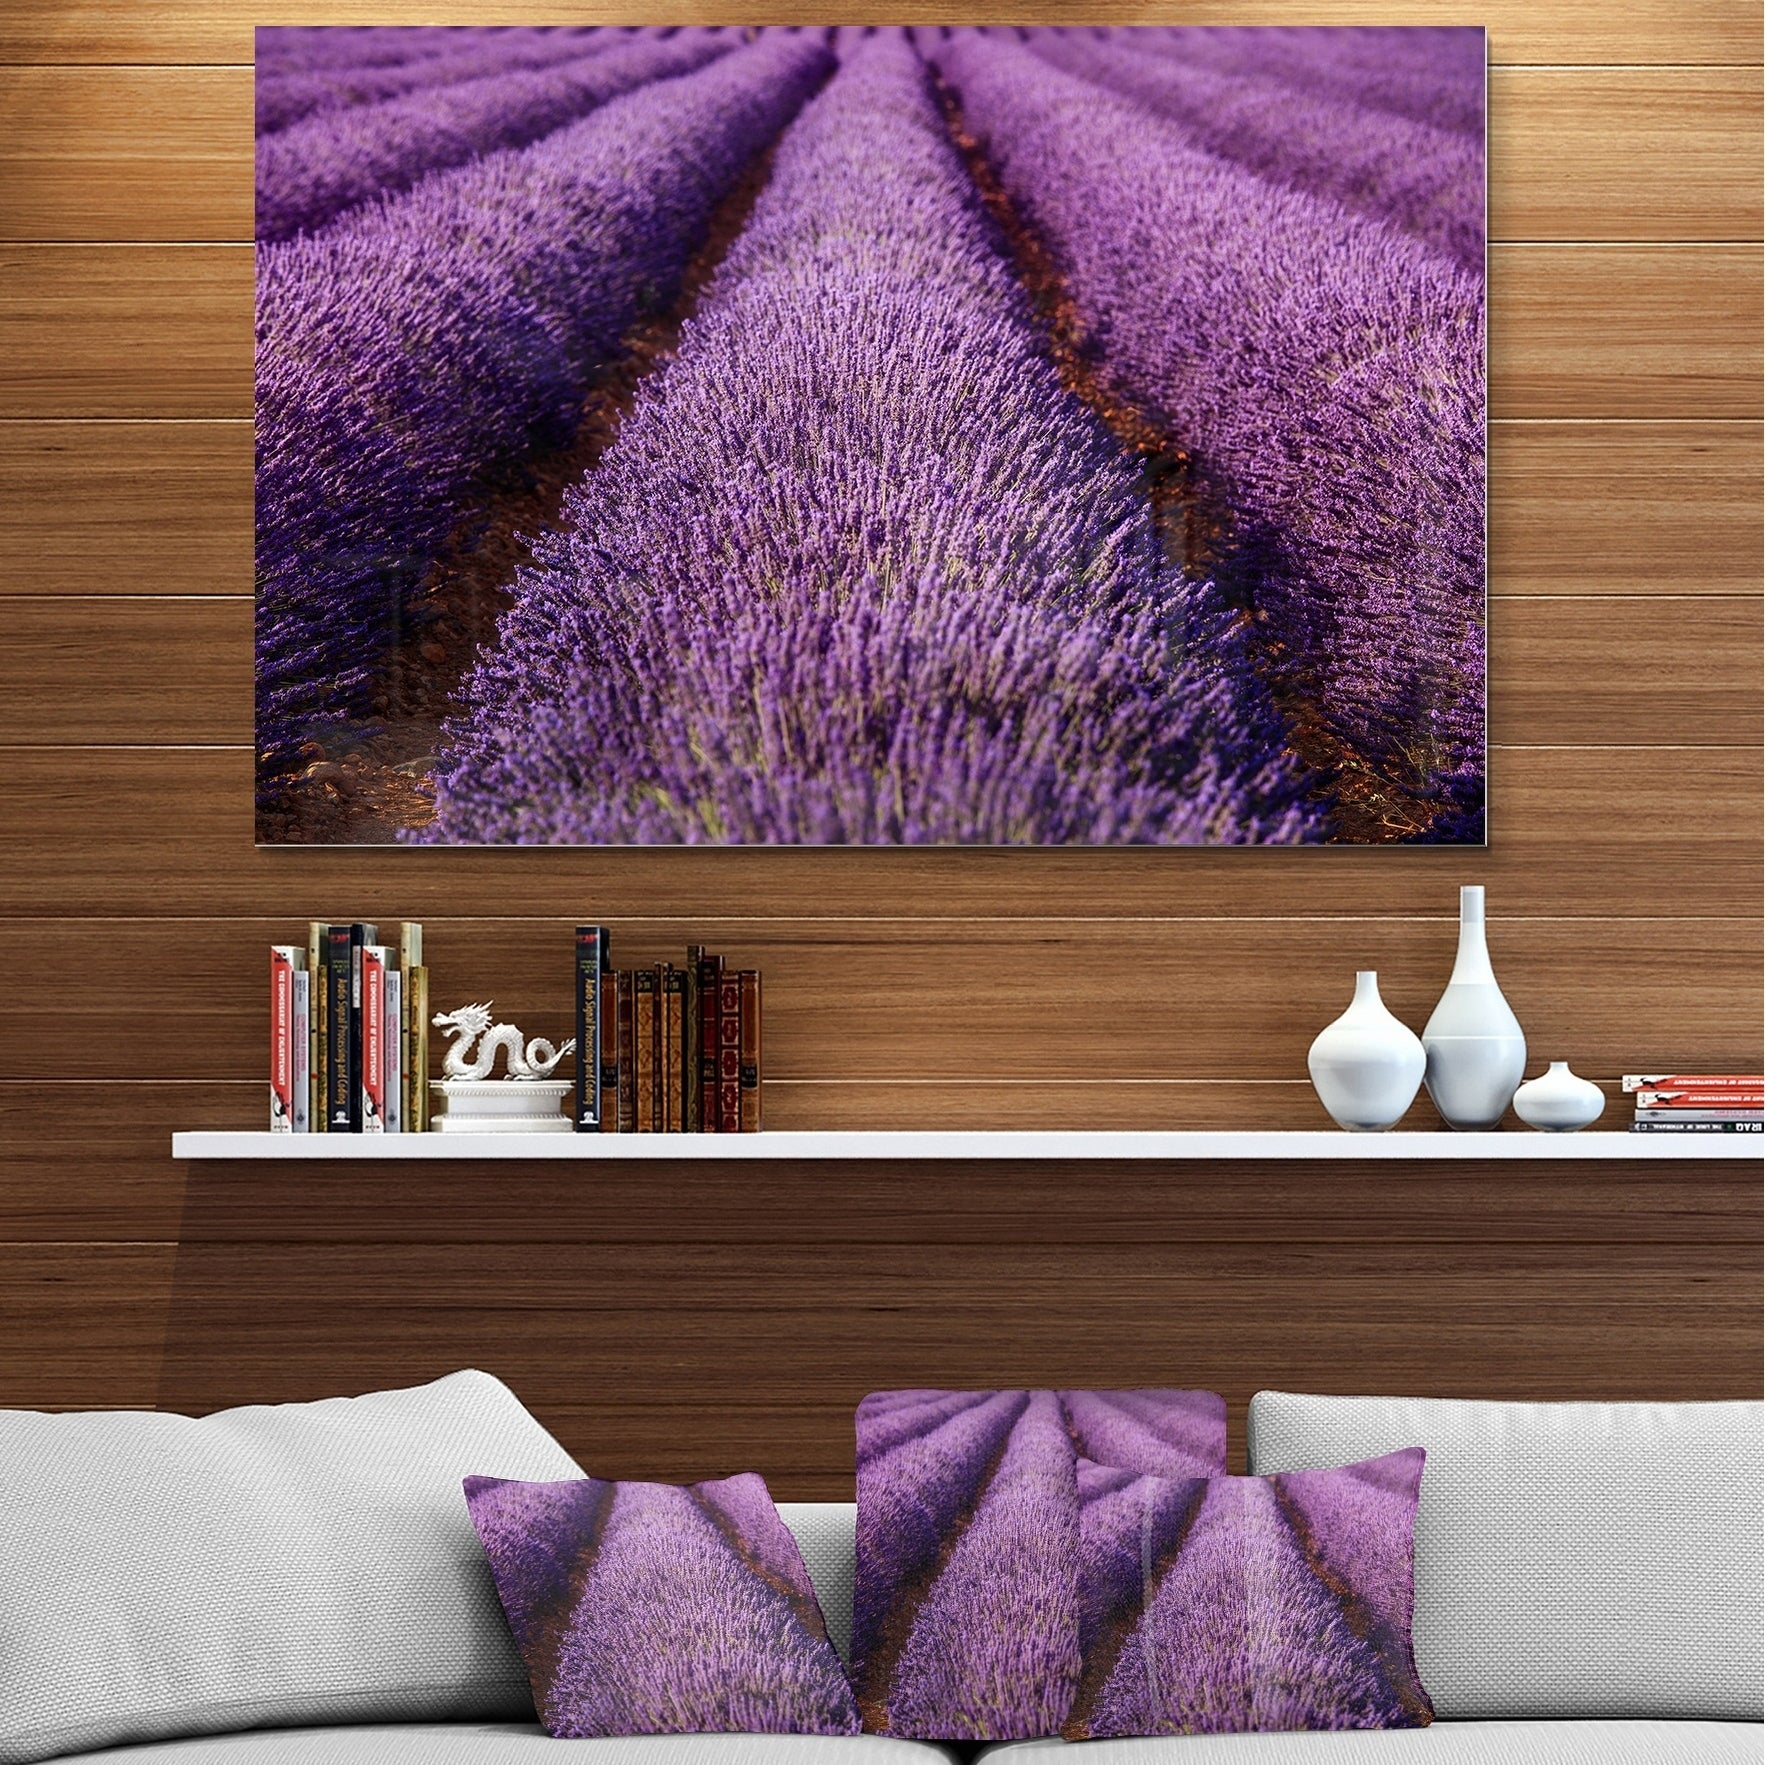 Endless Rows Of Lavender Field Oversized Landscape Glossy Metal Wall Art Overstock 12779455